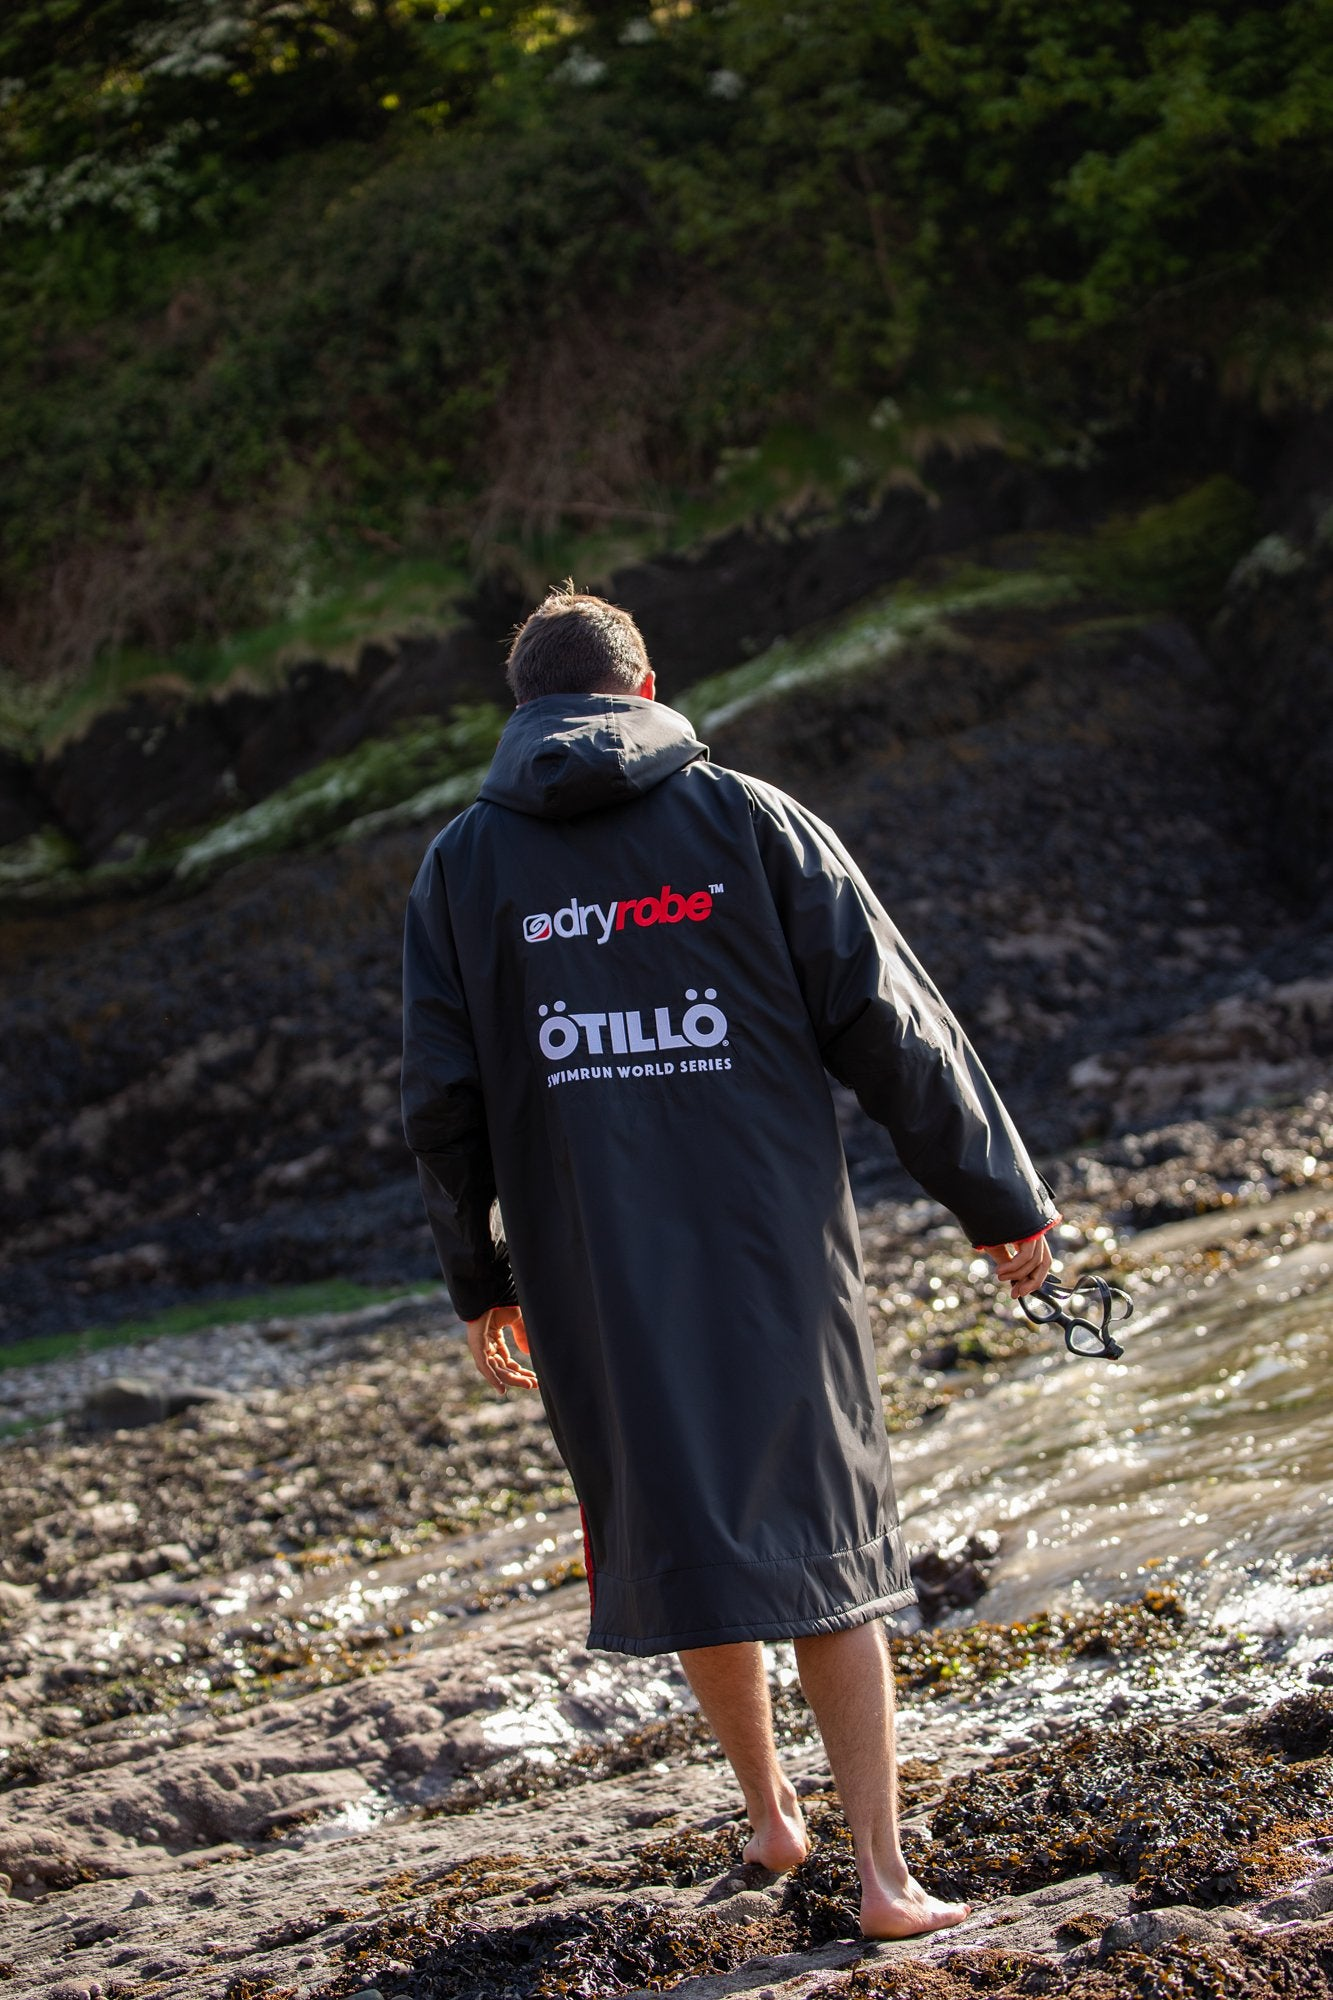 ÖTILLÖ Race Swimrun dryrobe shot from behind